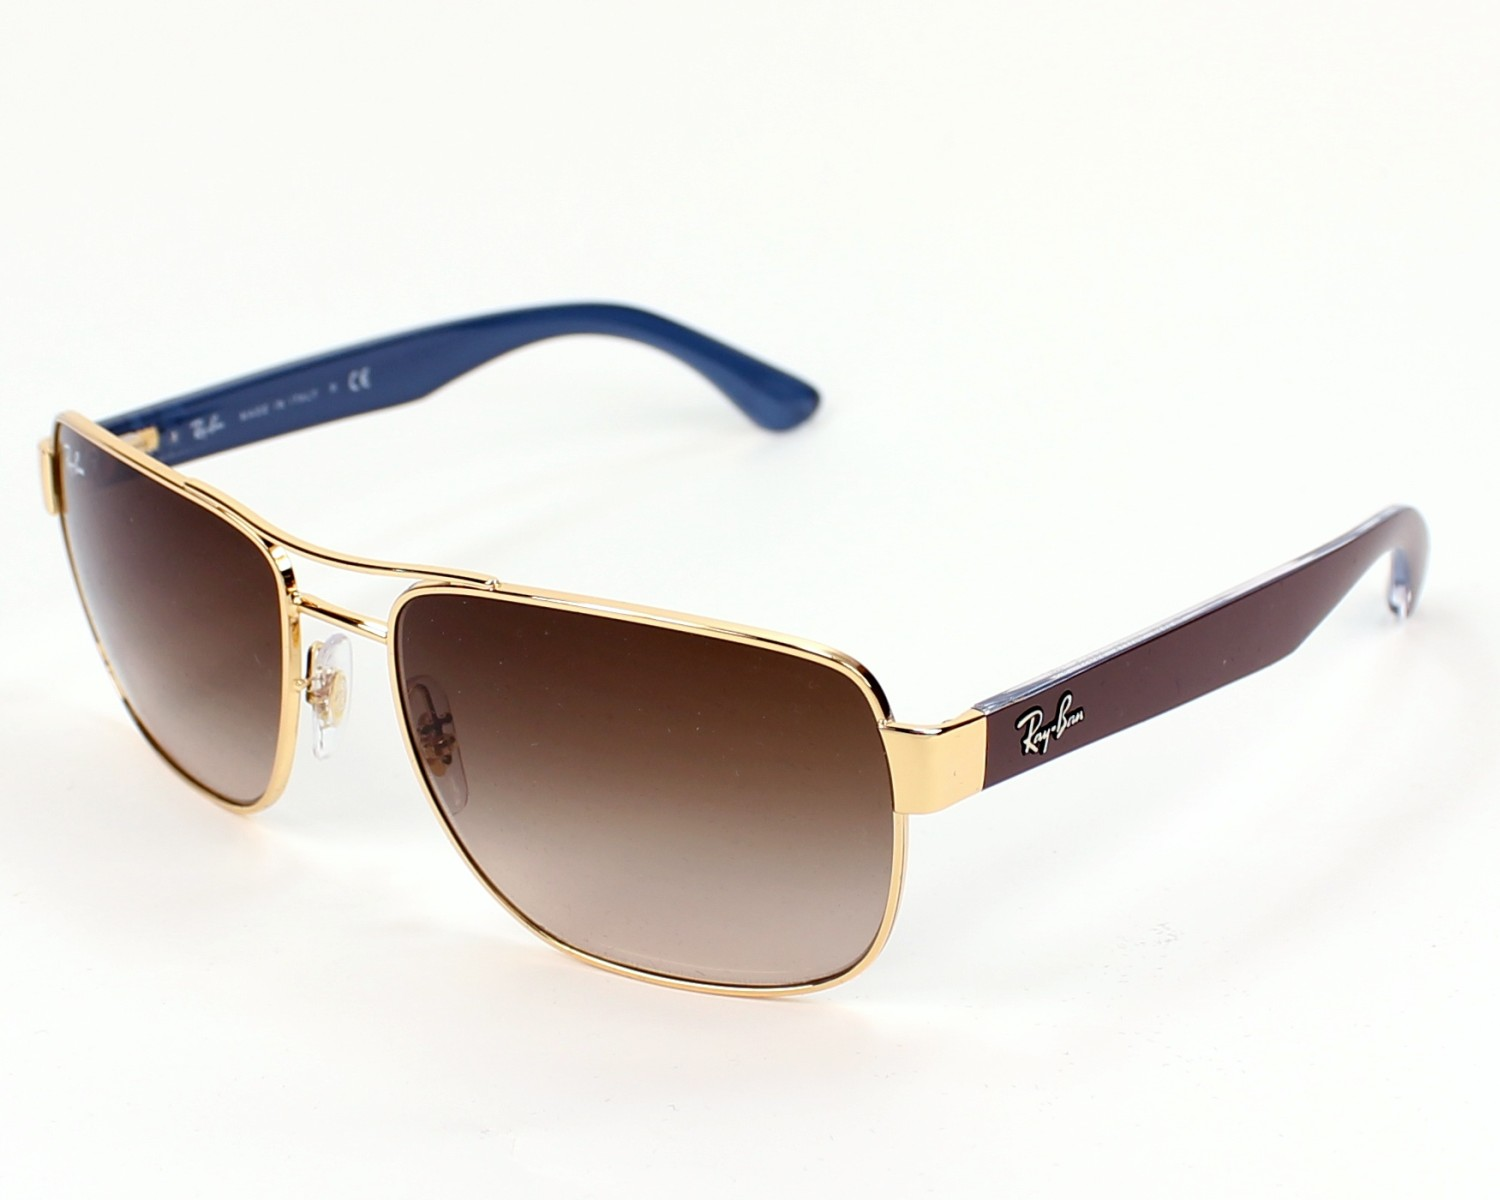 Ray Ban RB3530 001/13 58 Sonnenbrille Herrenbrille m8WoS